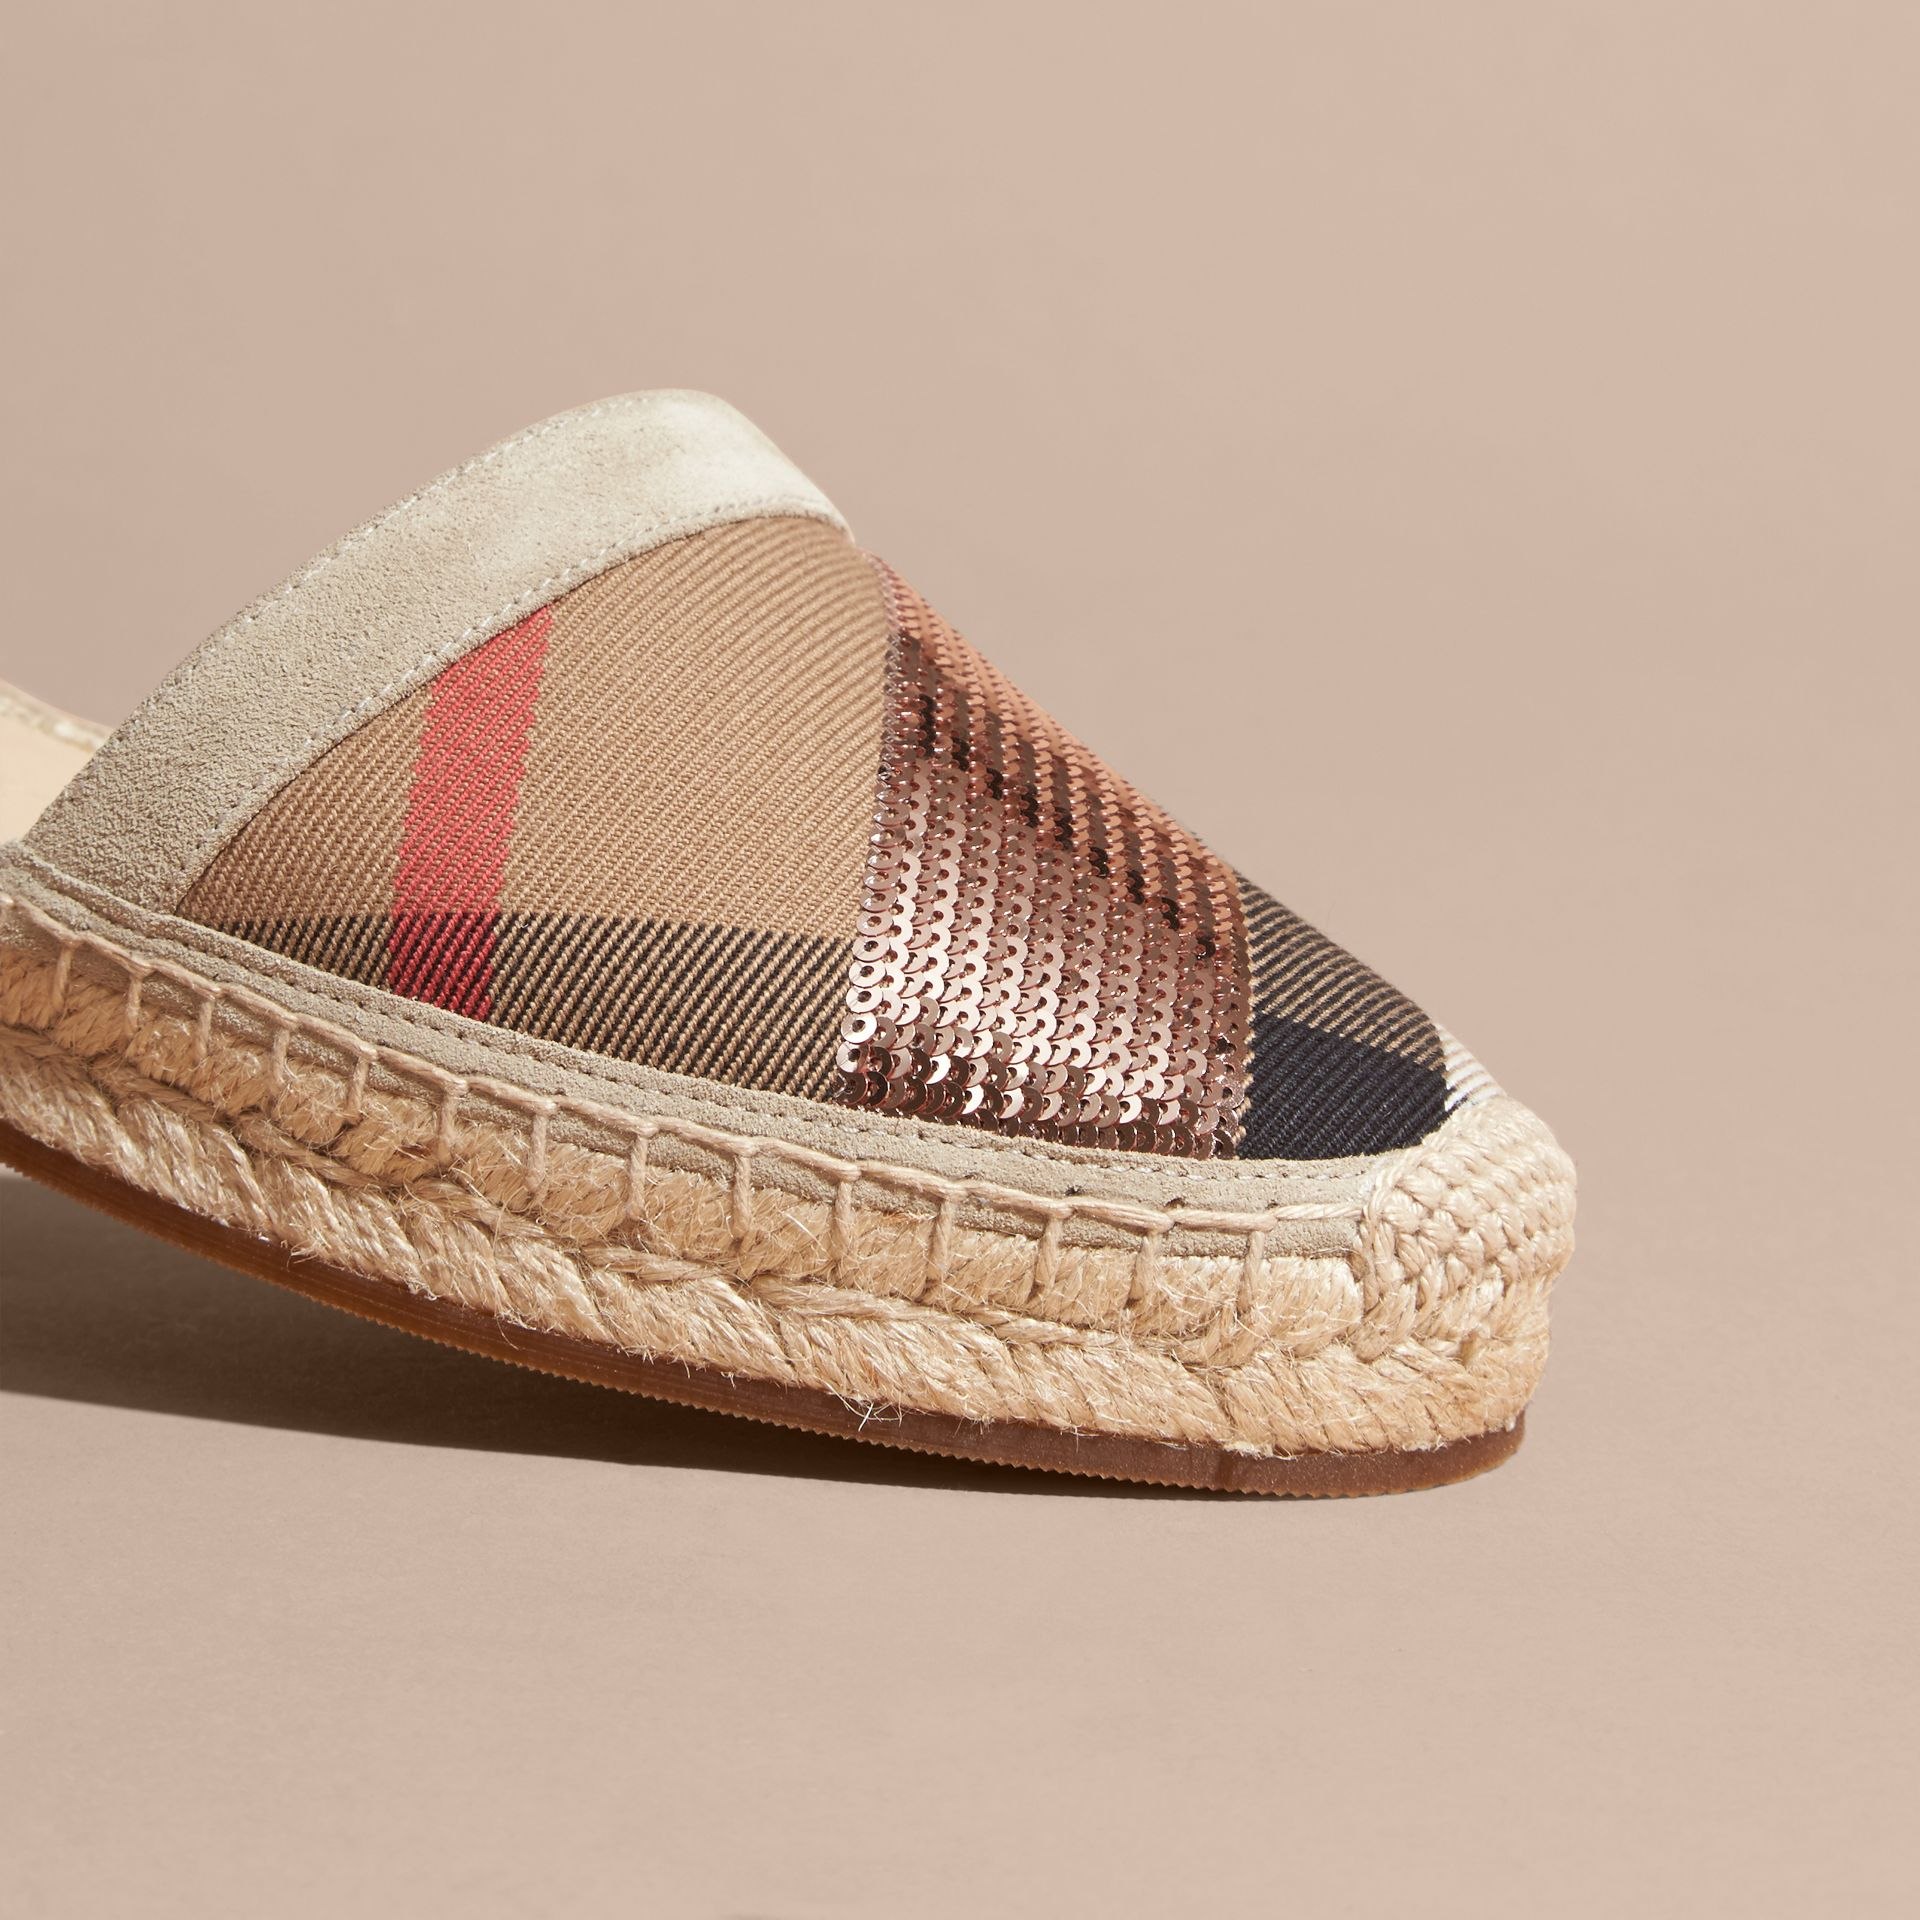 House check/pale pink Sequinned Leather and House Check Espadrille Sandals Check/pale Pink - gallery image 6